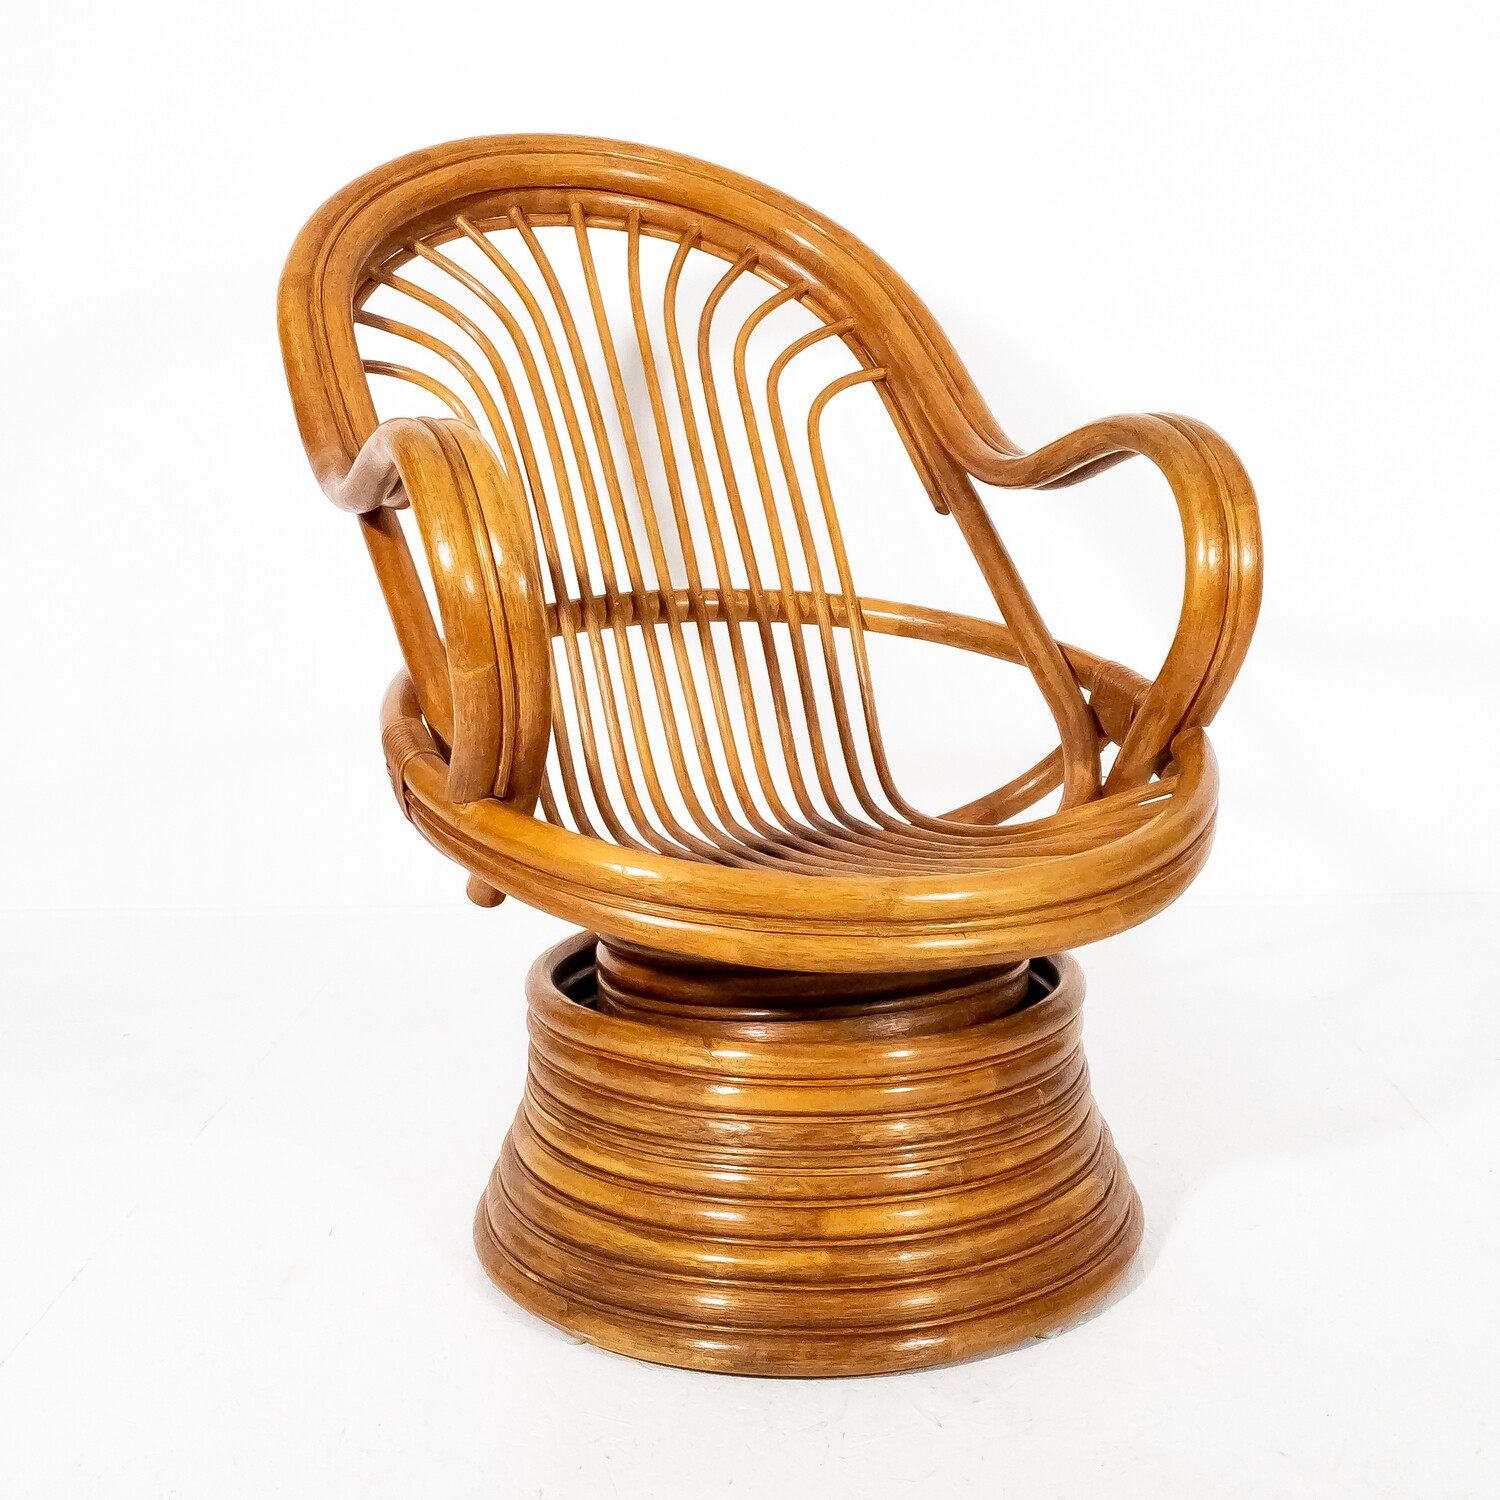 Rocking chair in bamboo